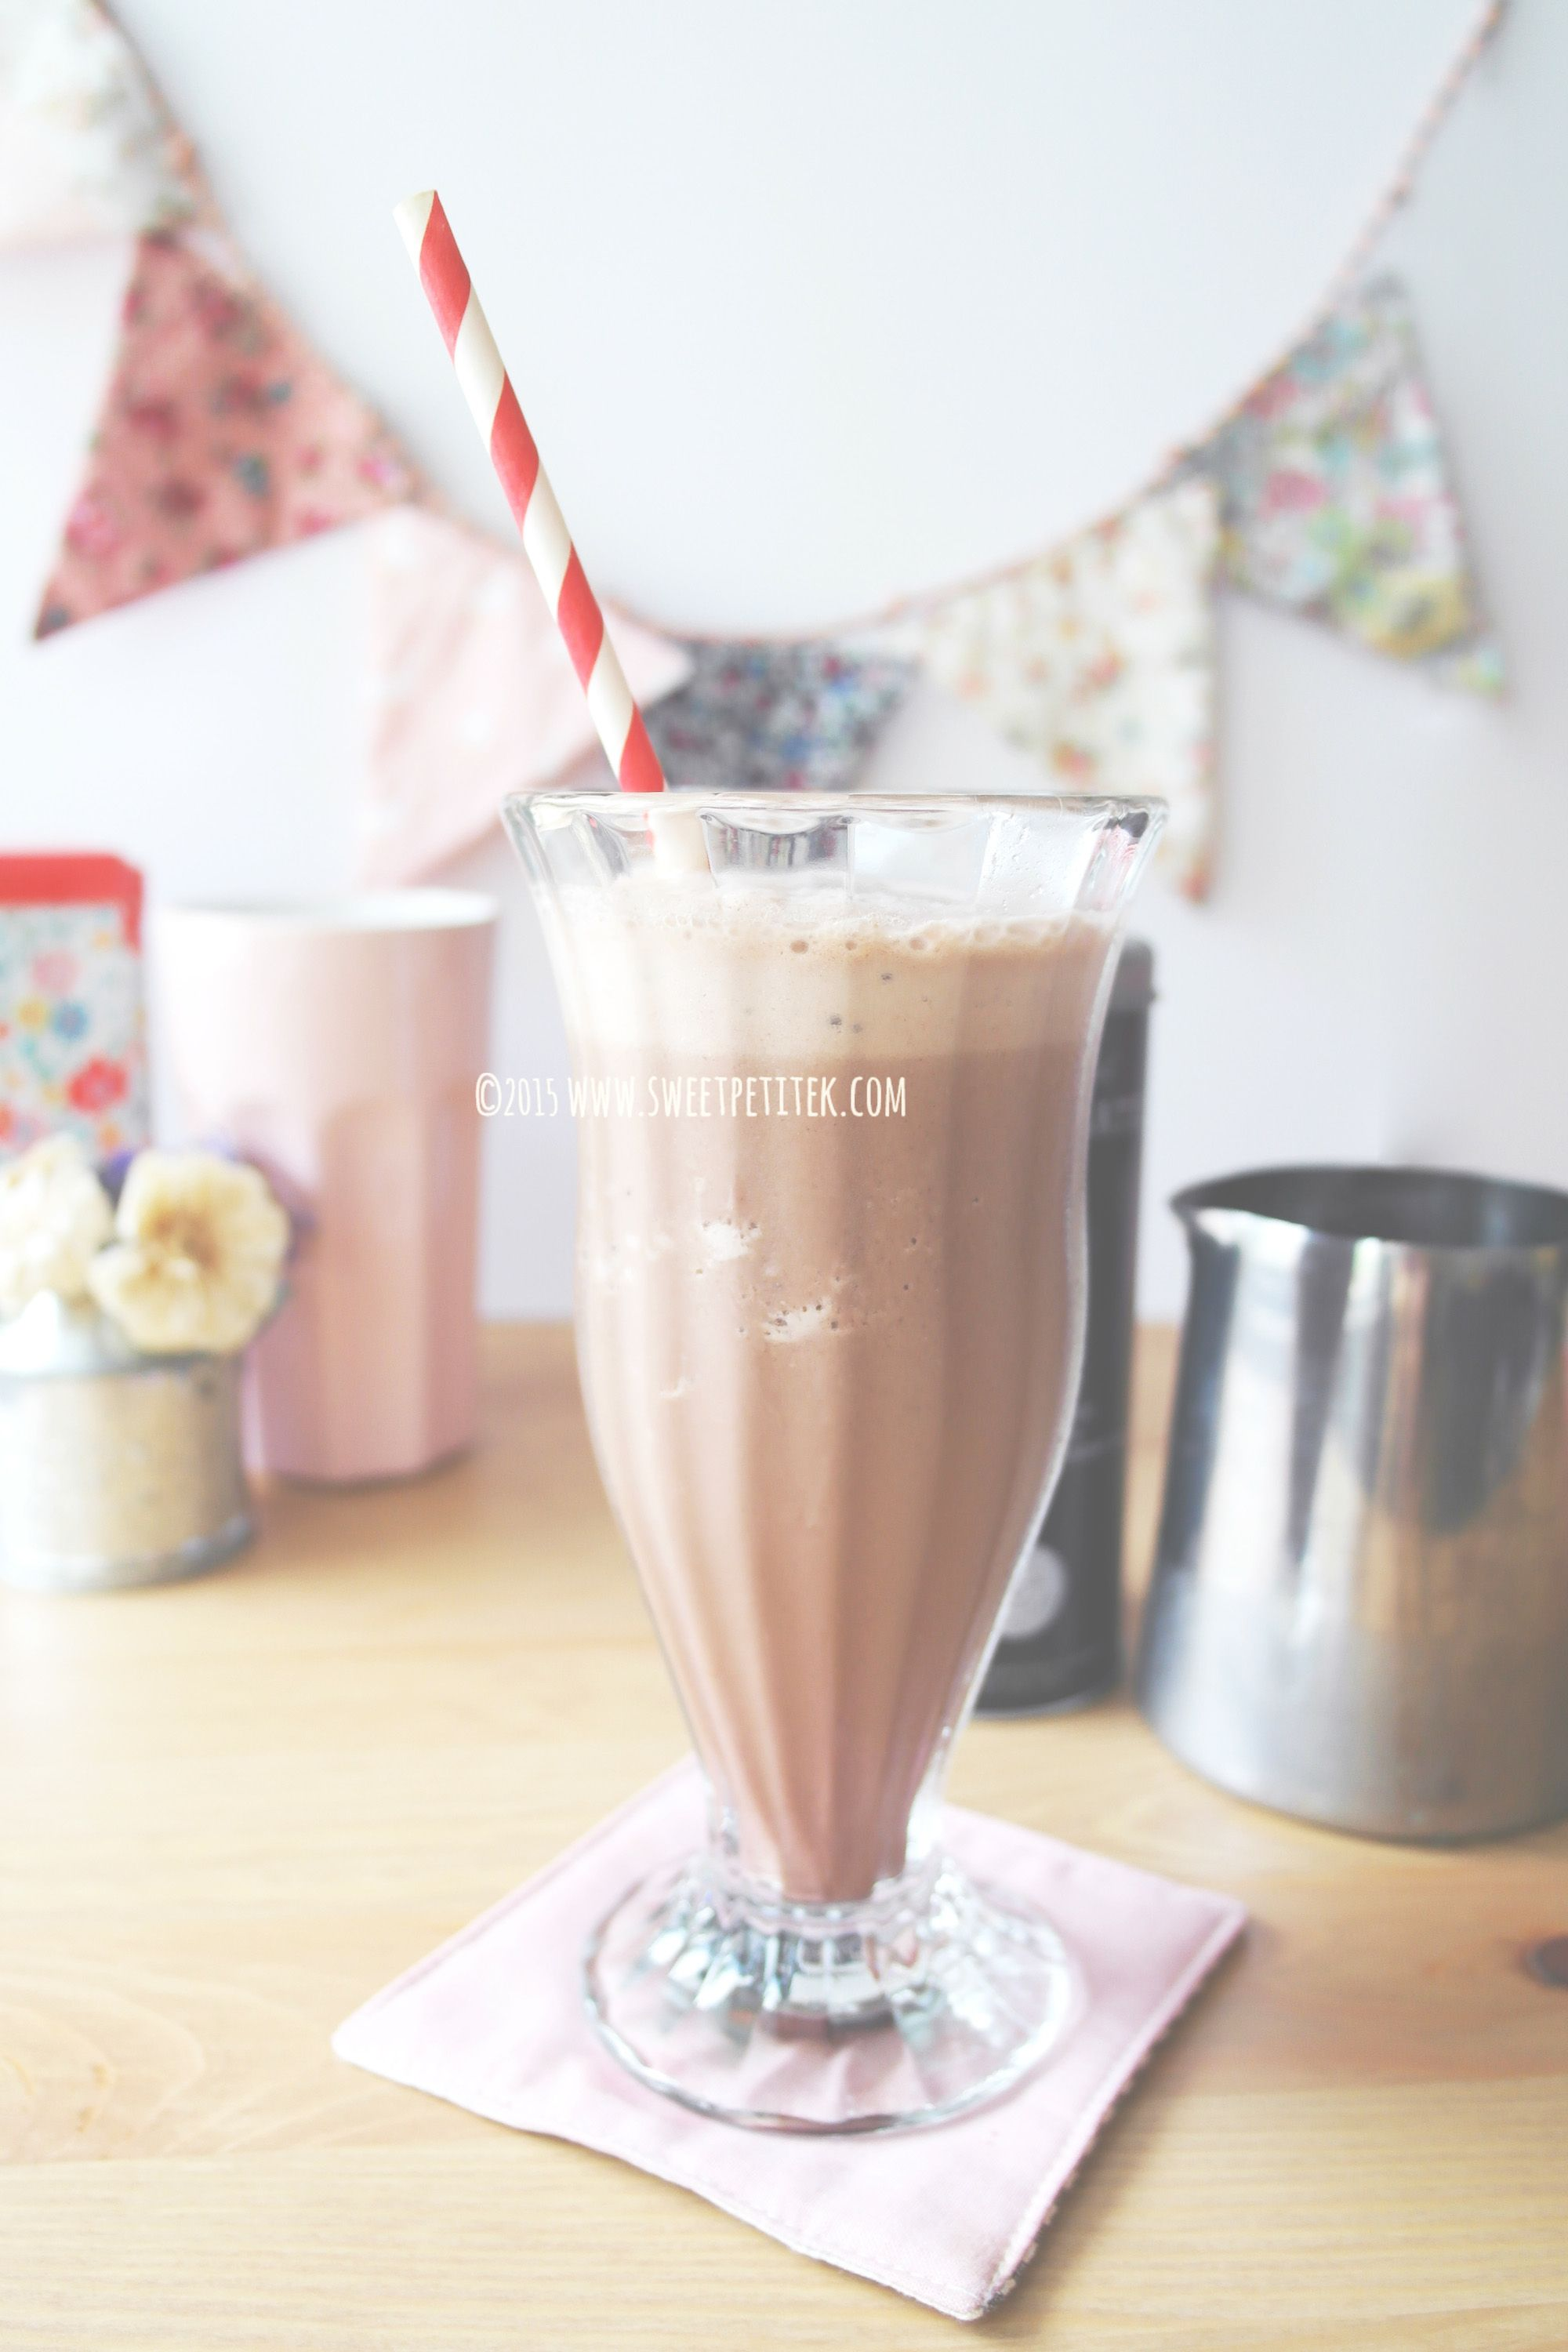 Homemade Coffee Bean Mocha Ice Blended Homemade Coffee Diy Drinks Champagne Flute